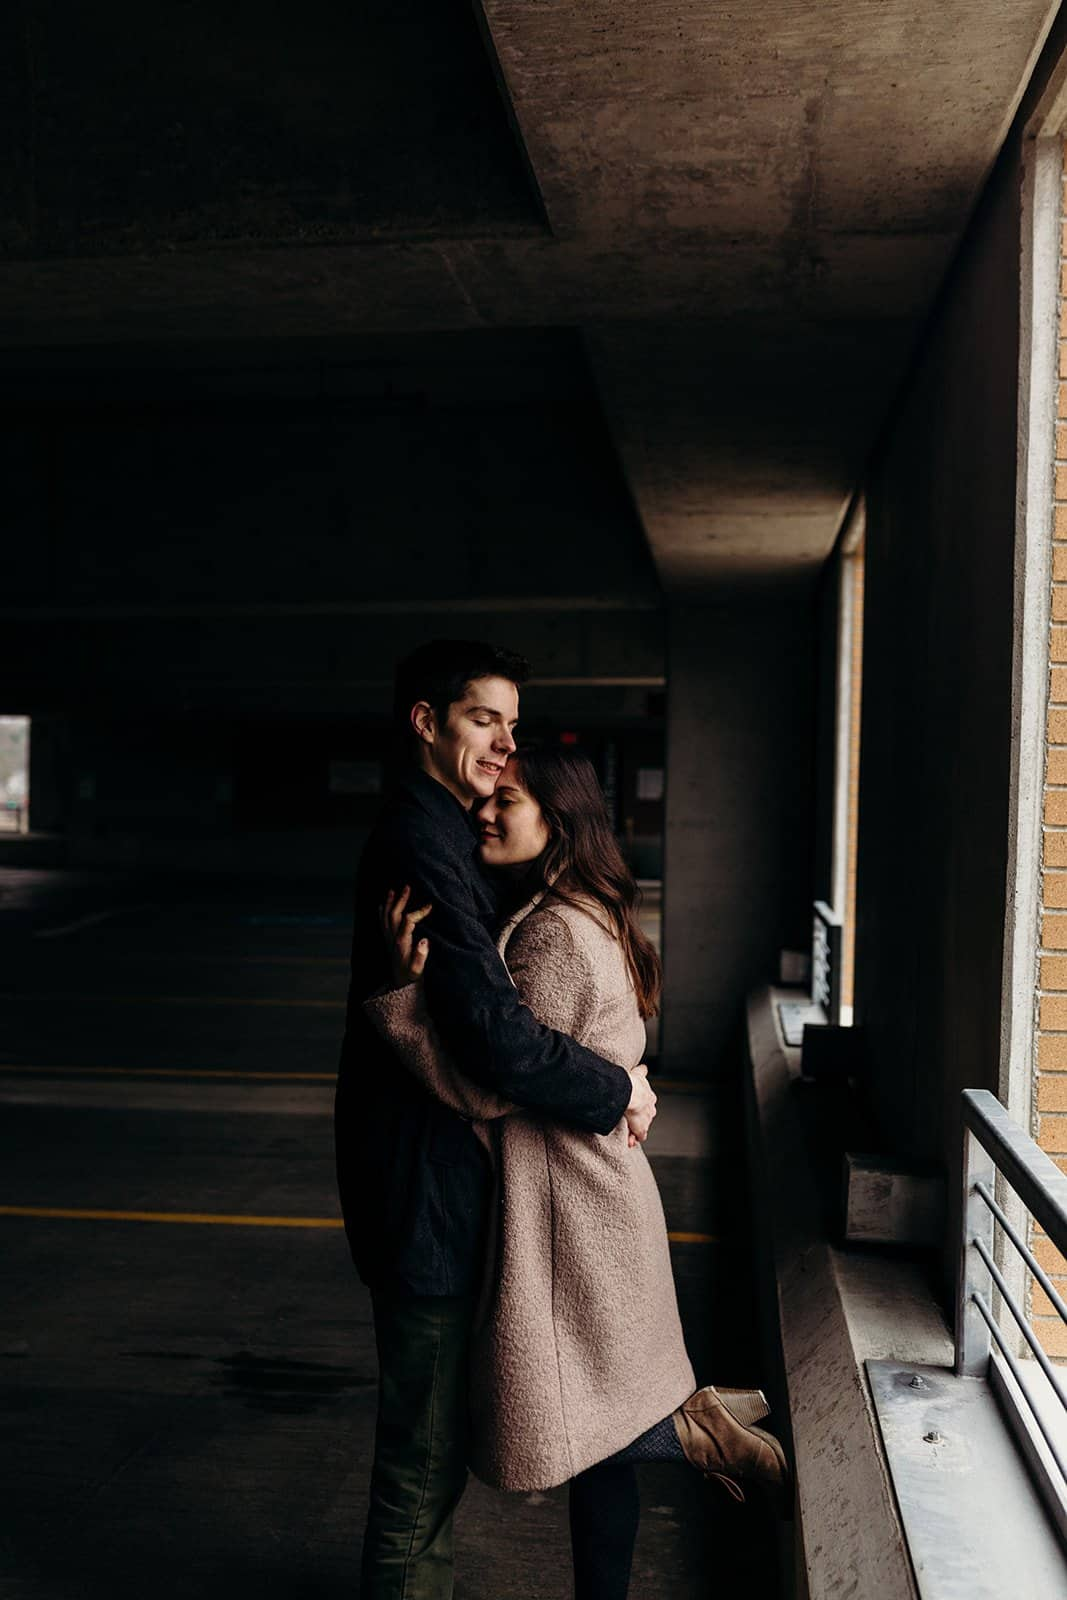 Kent Ohio engaged couple smile in parking garage